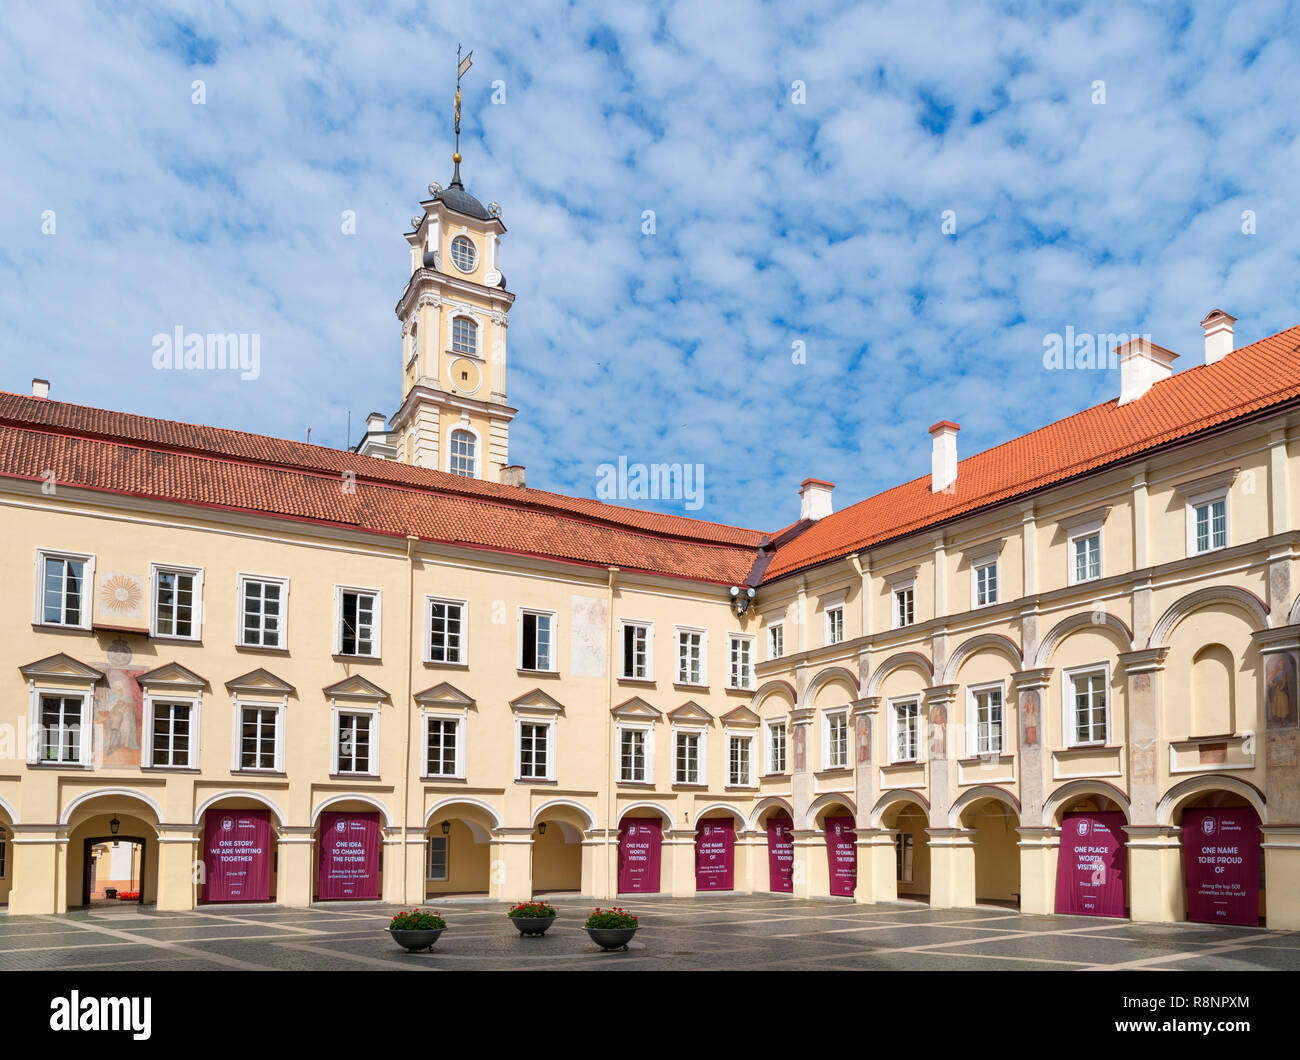 6a606b3533 Vilnius University, Vilnius, Lithuania Stock Photo: 229131020 - Alamy